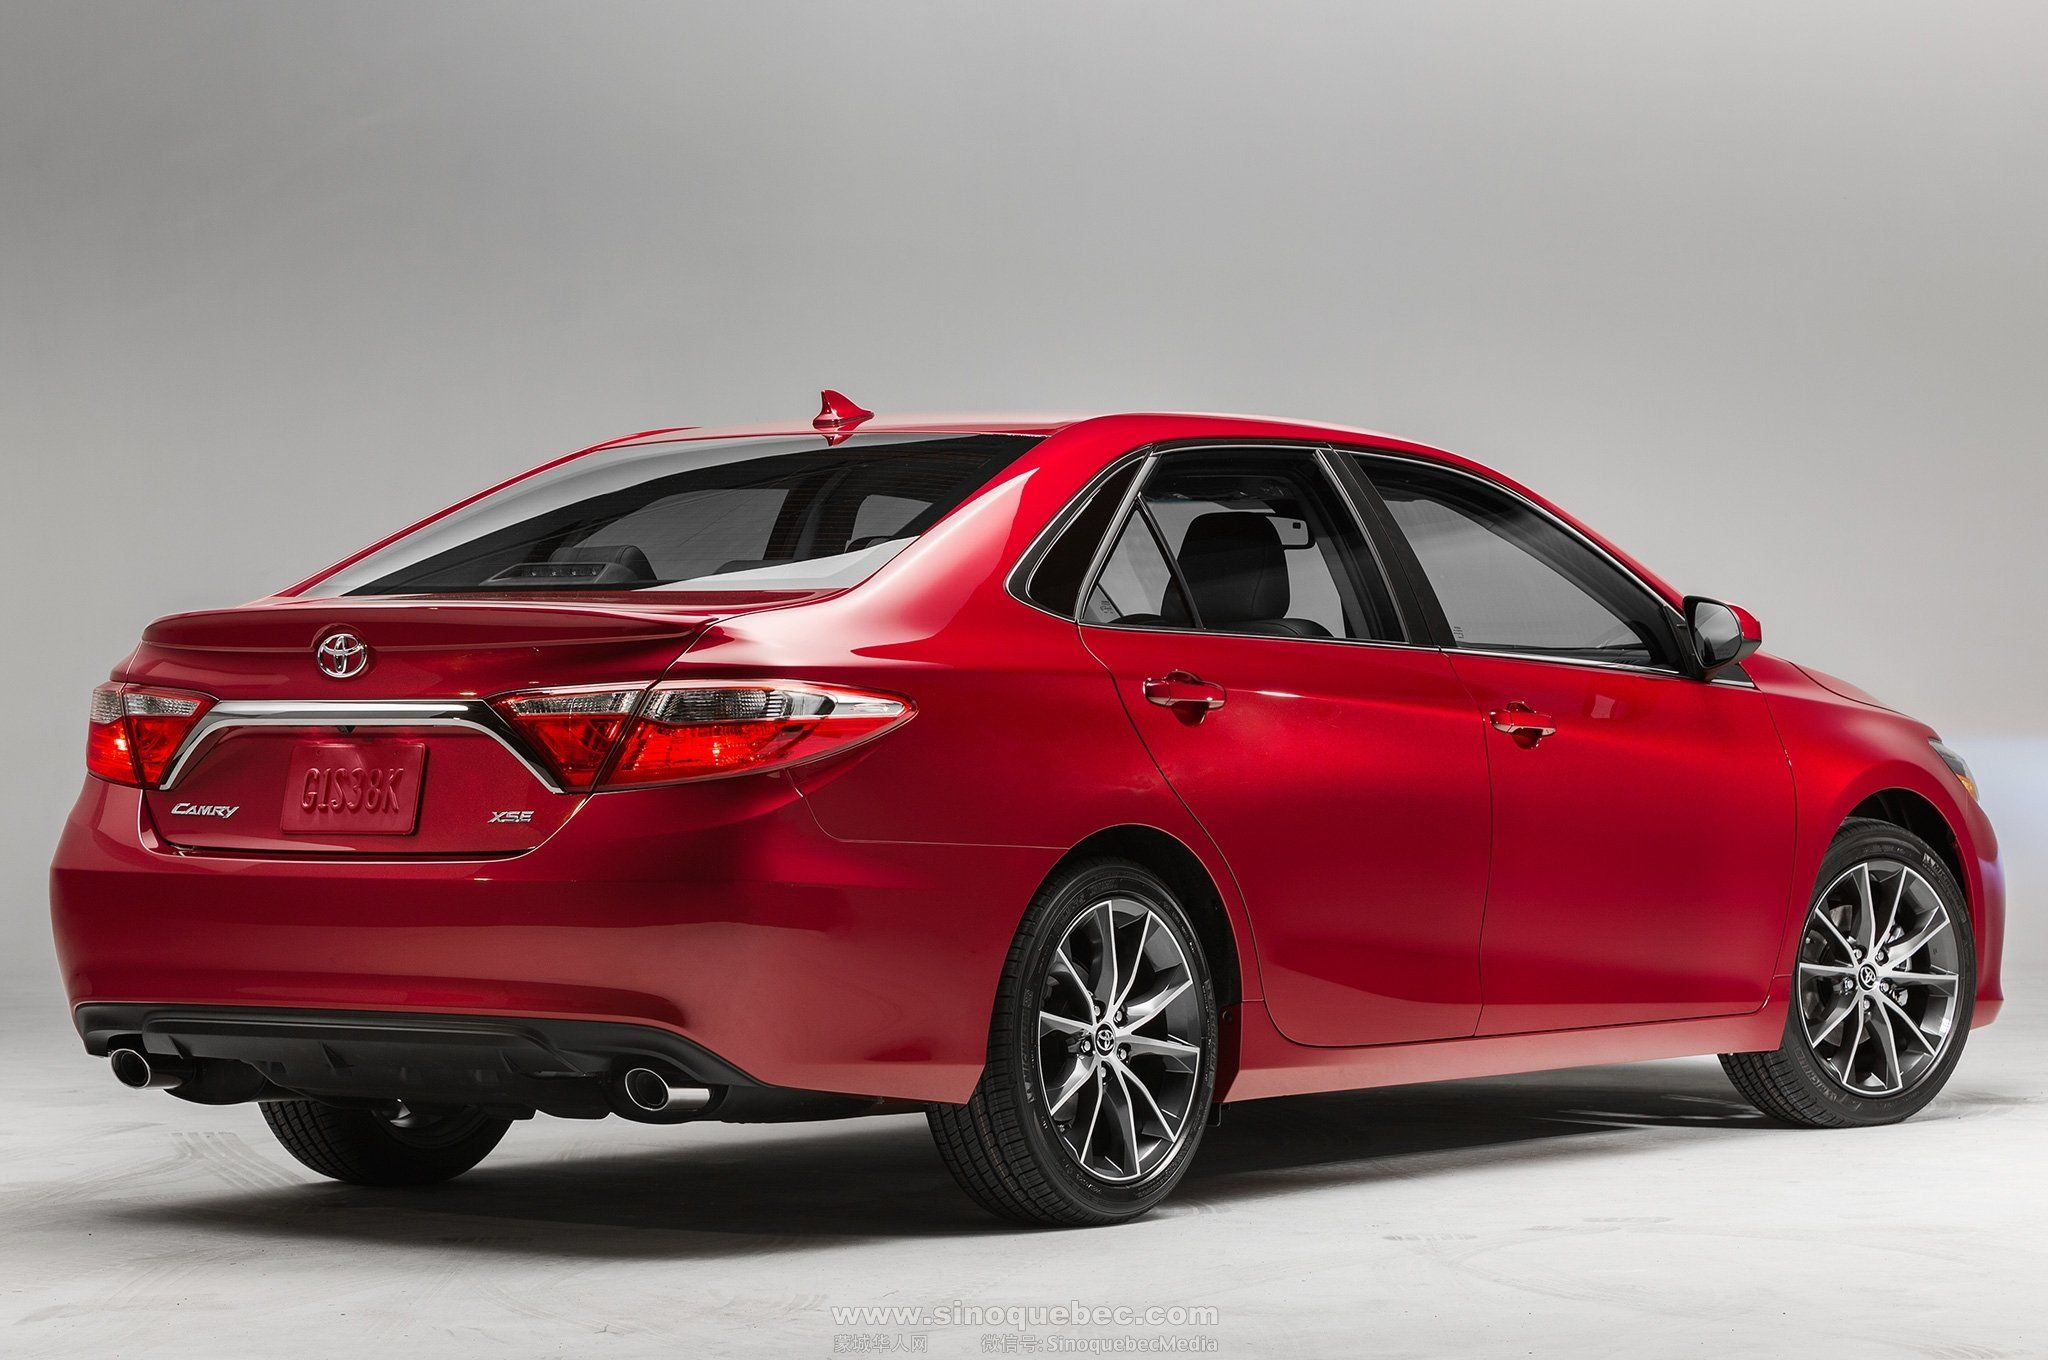 2015-toyota-camry-xse-rear-side-view-studio.jpg